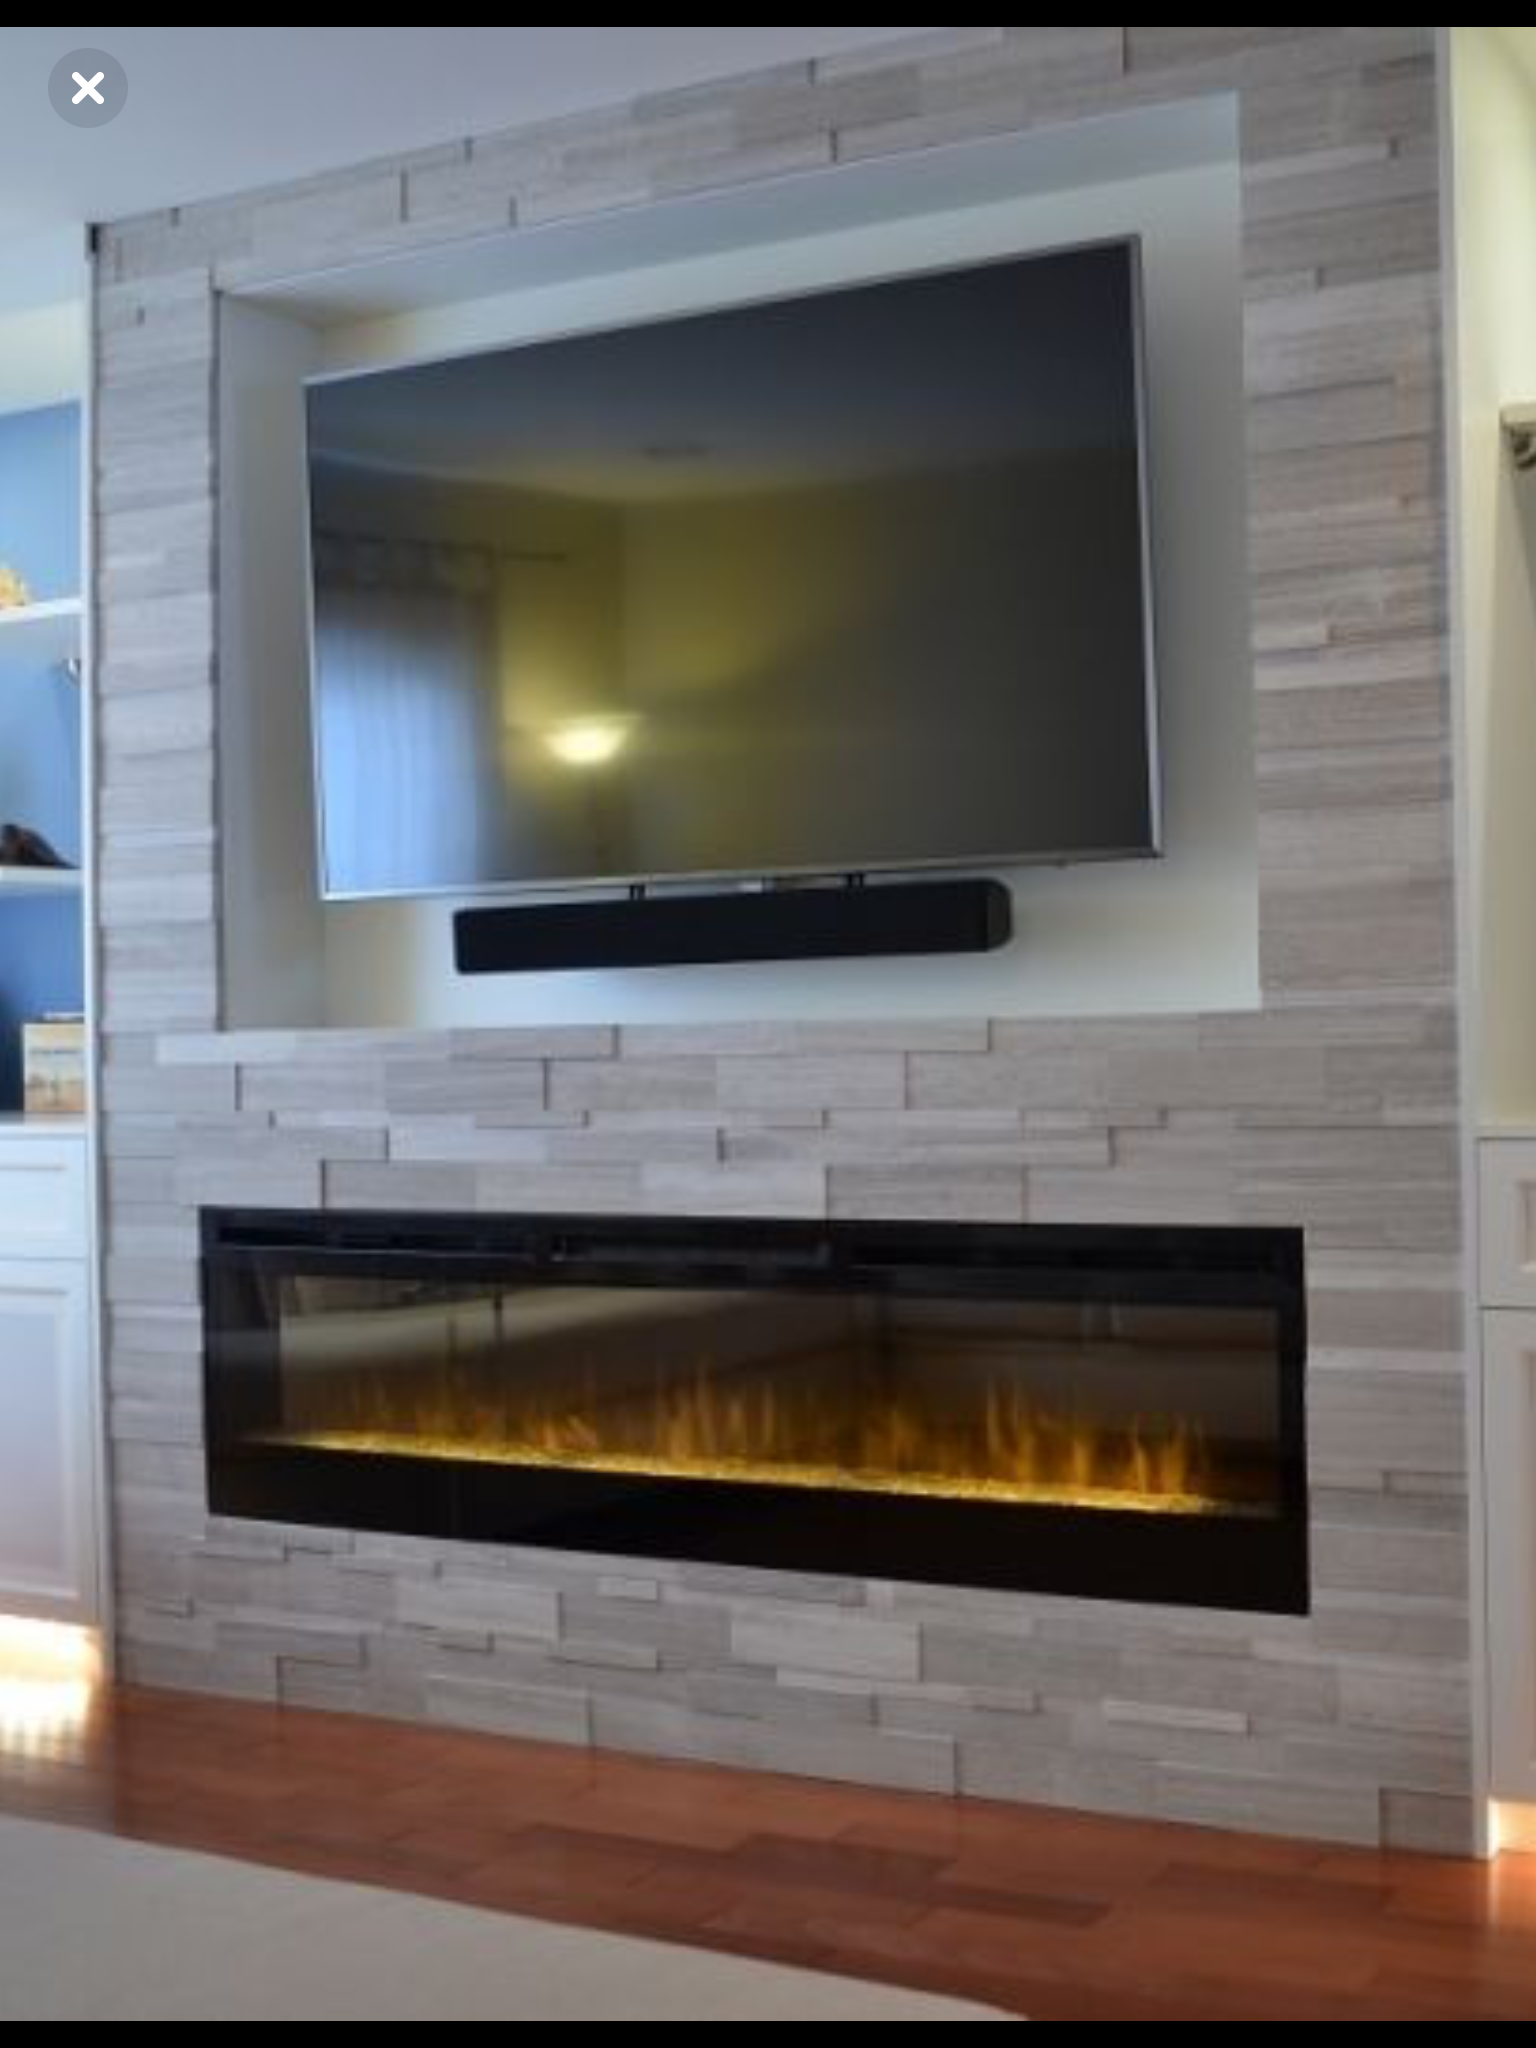 Get This Fireplace Look Using The Ames Cubics Series Www